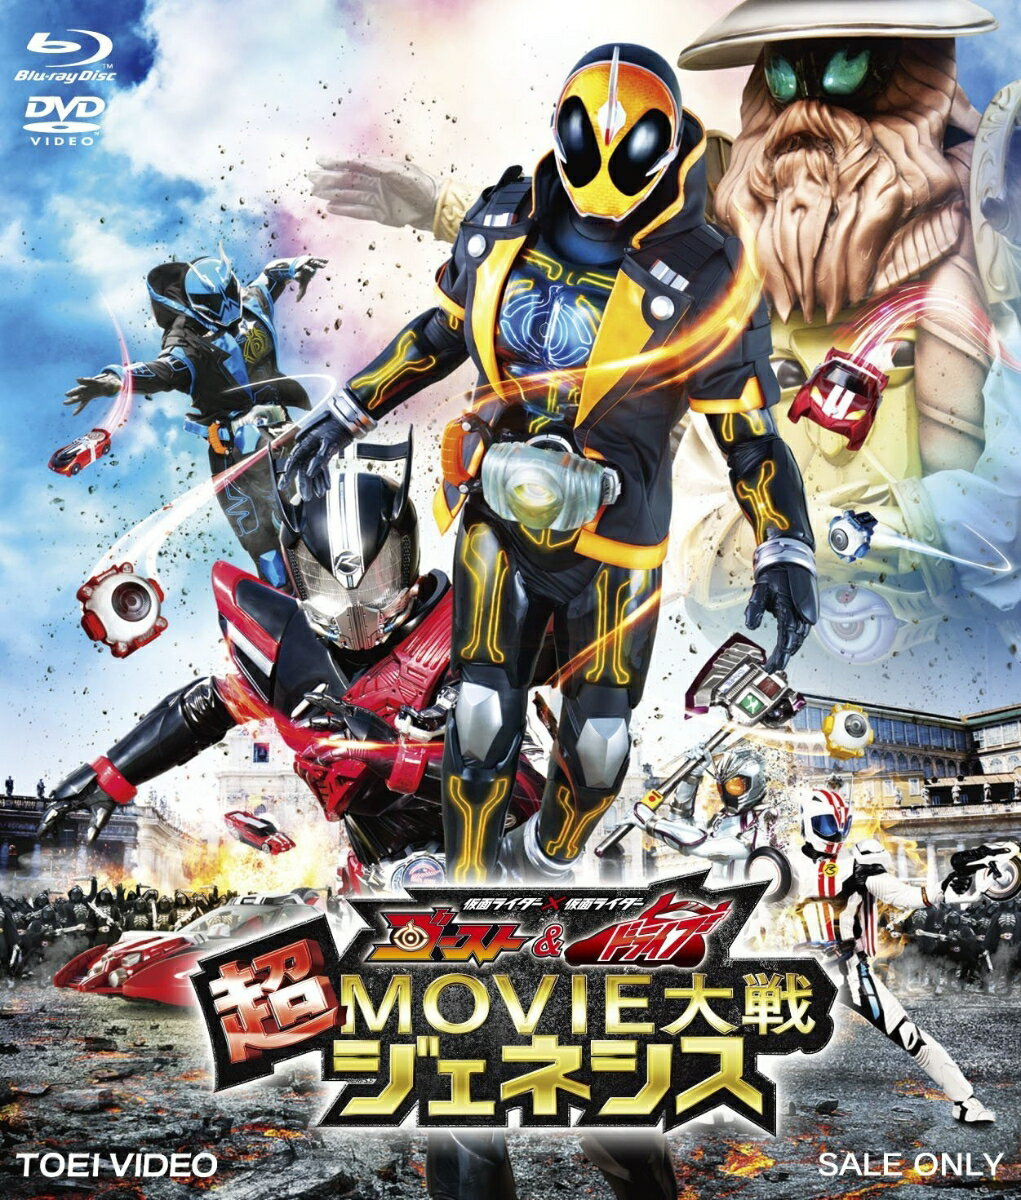 Kamen Rider ghost episode 1 MOVIE DVDBlu-ray